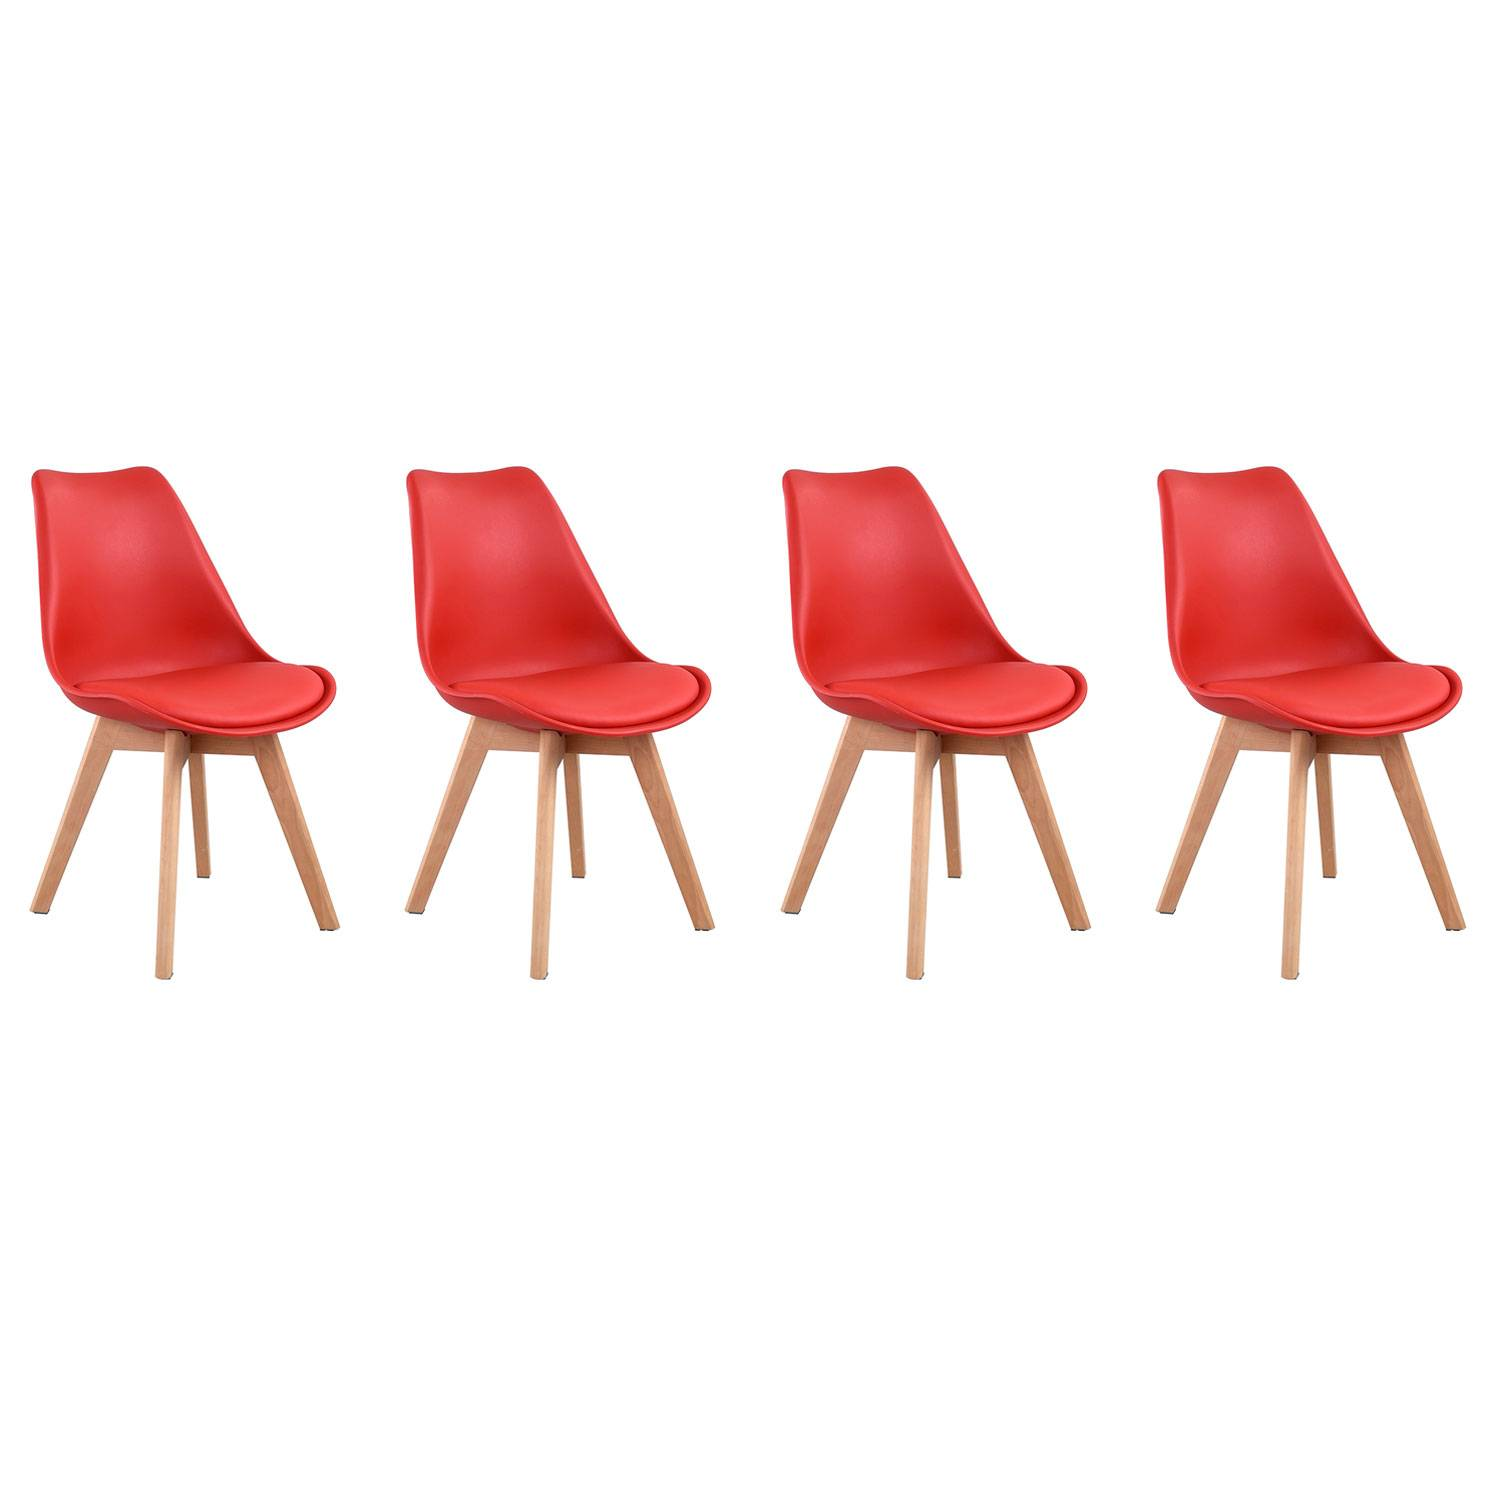 Chaises scandinaves rouges